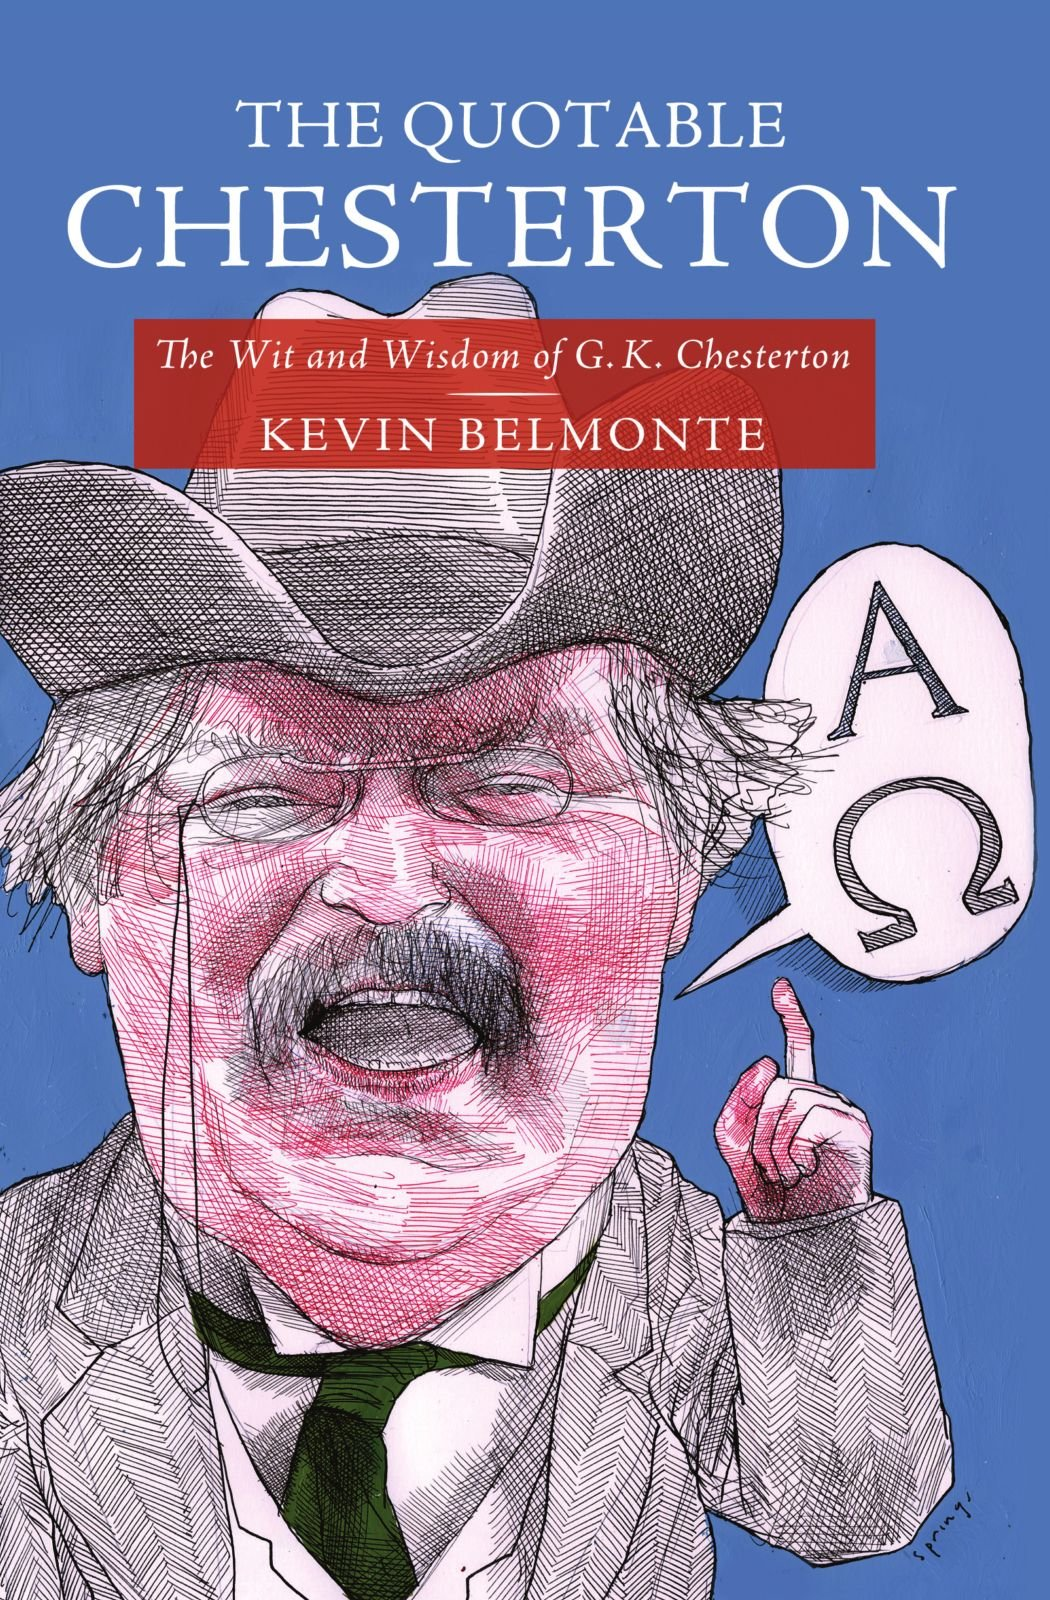 best gk chesterton essays Chesterton wrote around 80 books, several hundred poems, some 200 short stories, 4000 essays, and several plays he was a literary and social critic, historian, playwright, novelist, catholic theologian and apologist, debater, and mystery writer.